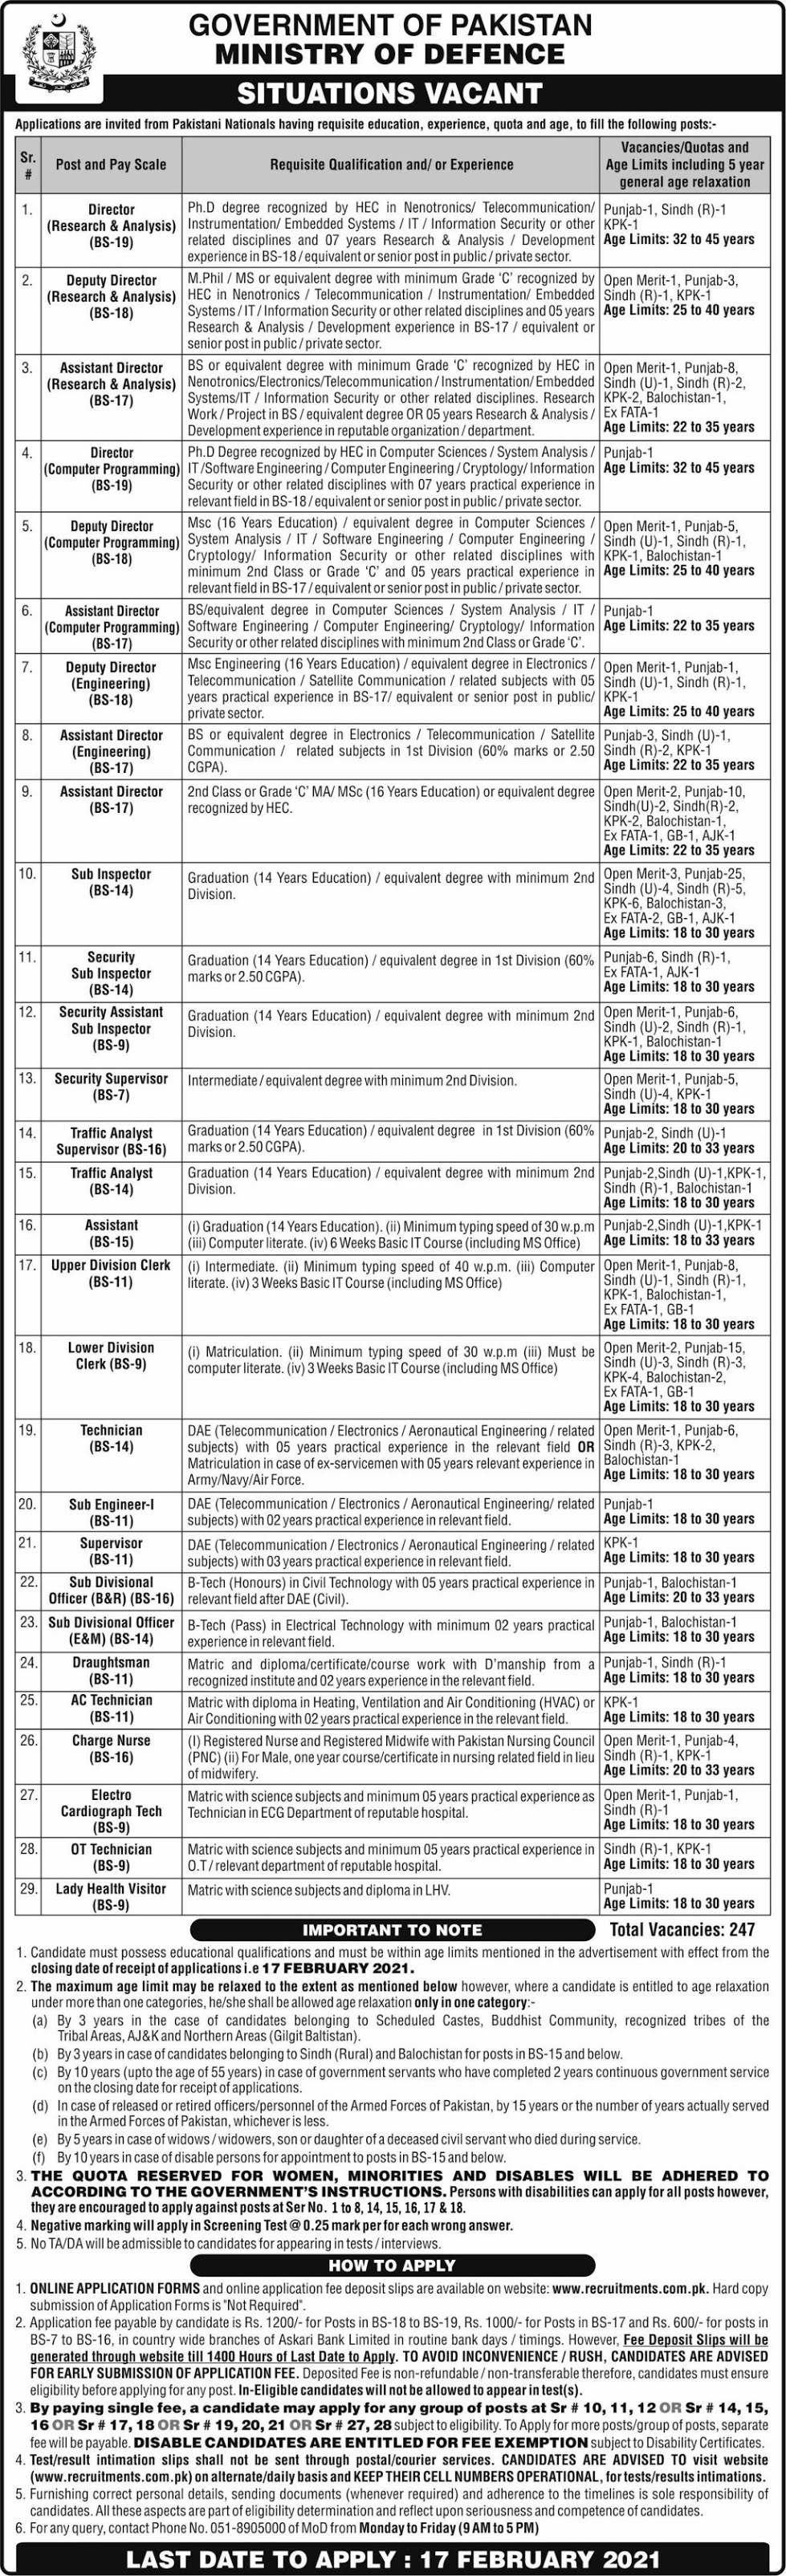 Ministry of Defence, Government of Pakistan Jobs 2021 for Assistant Director, Sub Inspector, Assistant, UDC, LDC and more | Multiple Vacancies